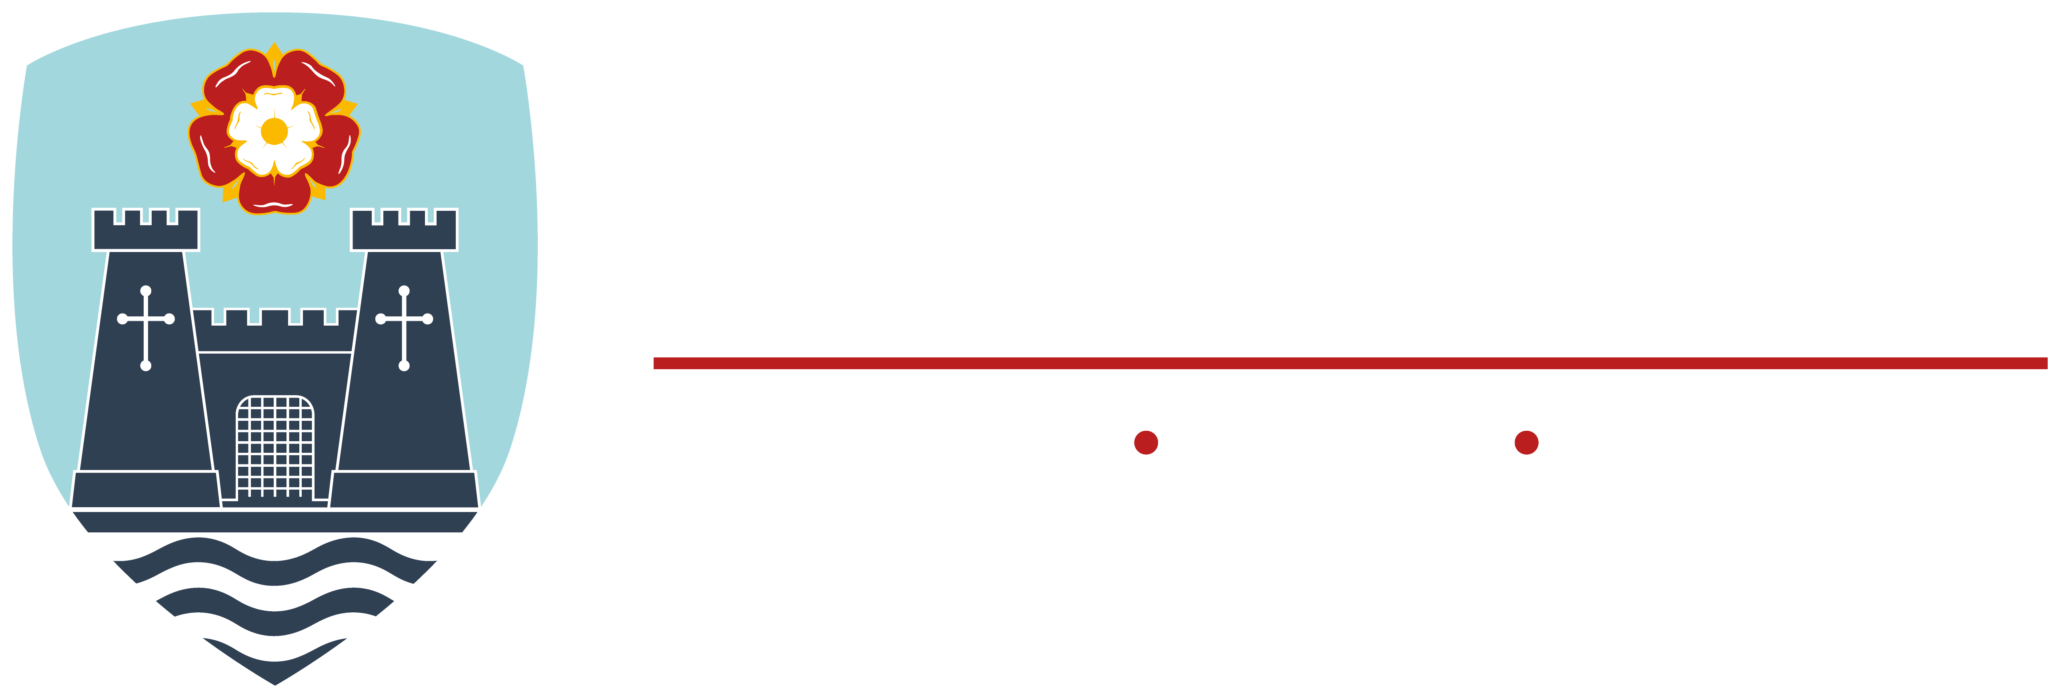 The Bay CE School